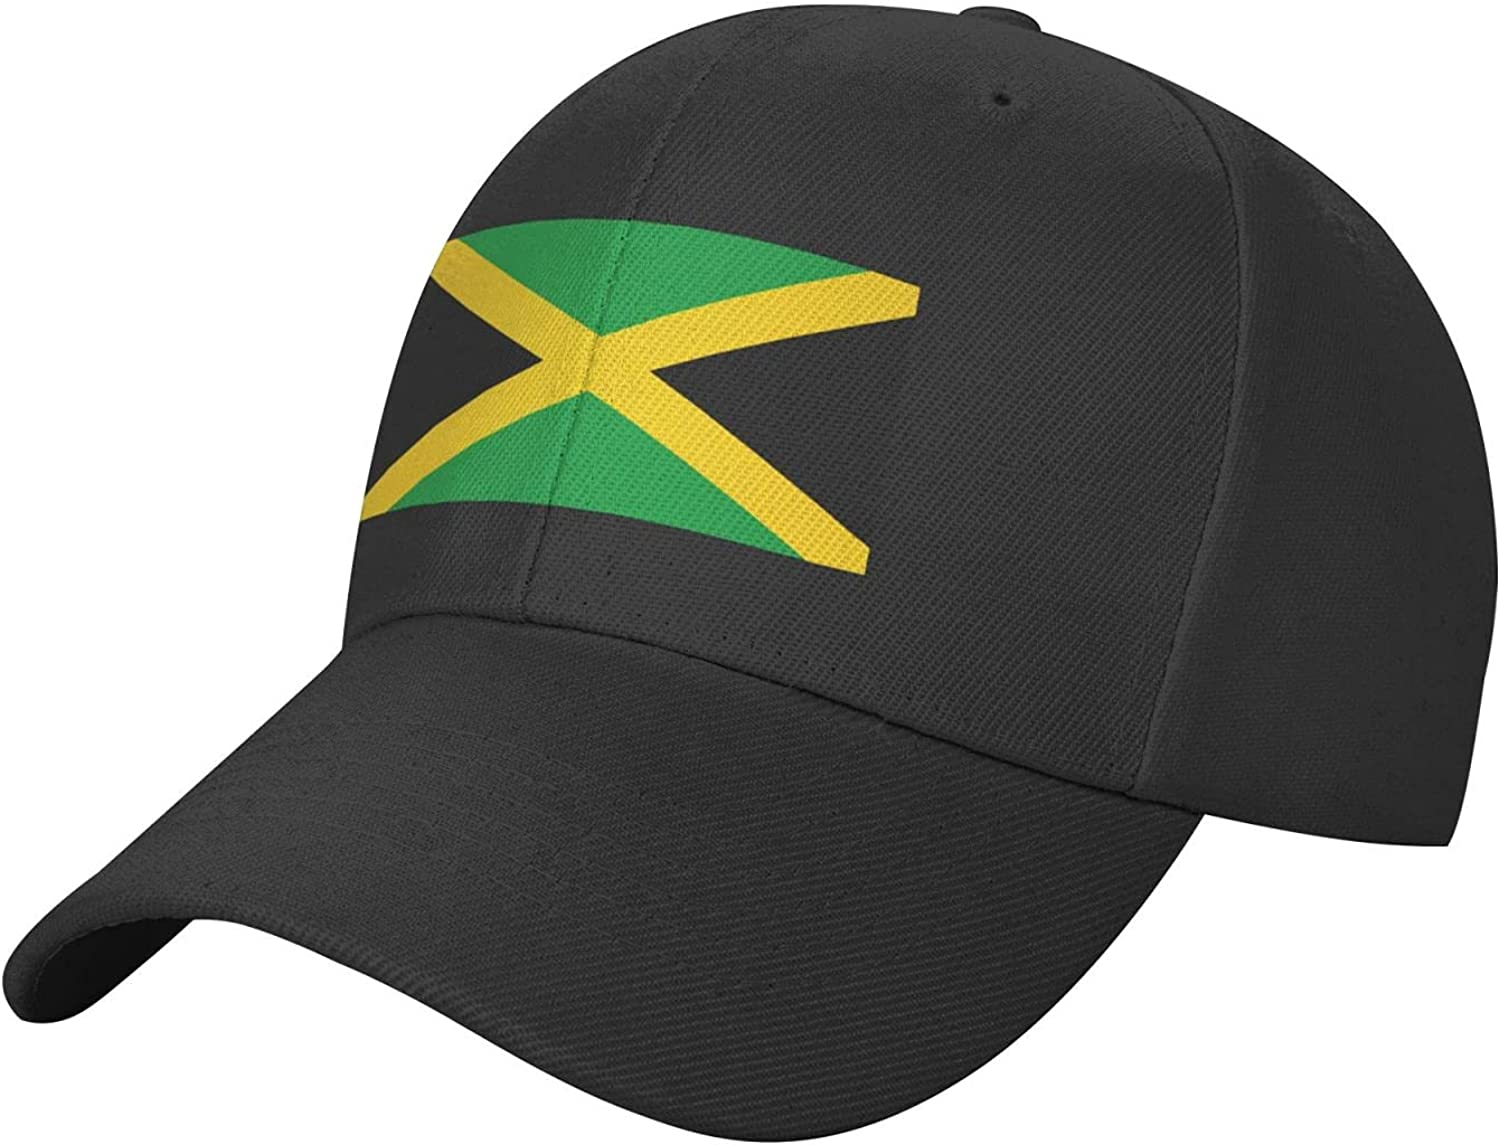 Cool Country Flag Hat Black Baseball Cap Adjustable, Fitted Trucker Hat Golf Hat Sun Hats Gifts for Men Women